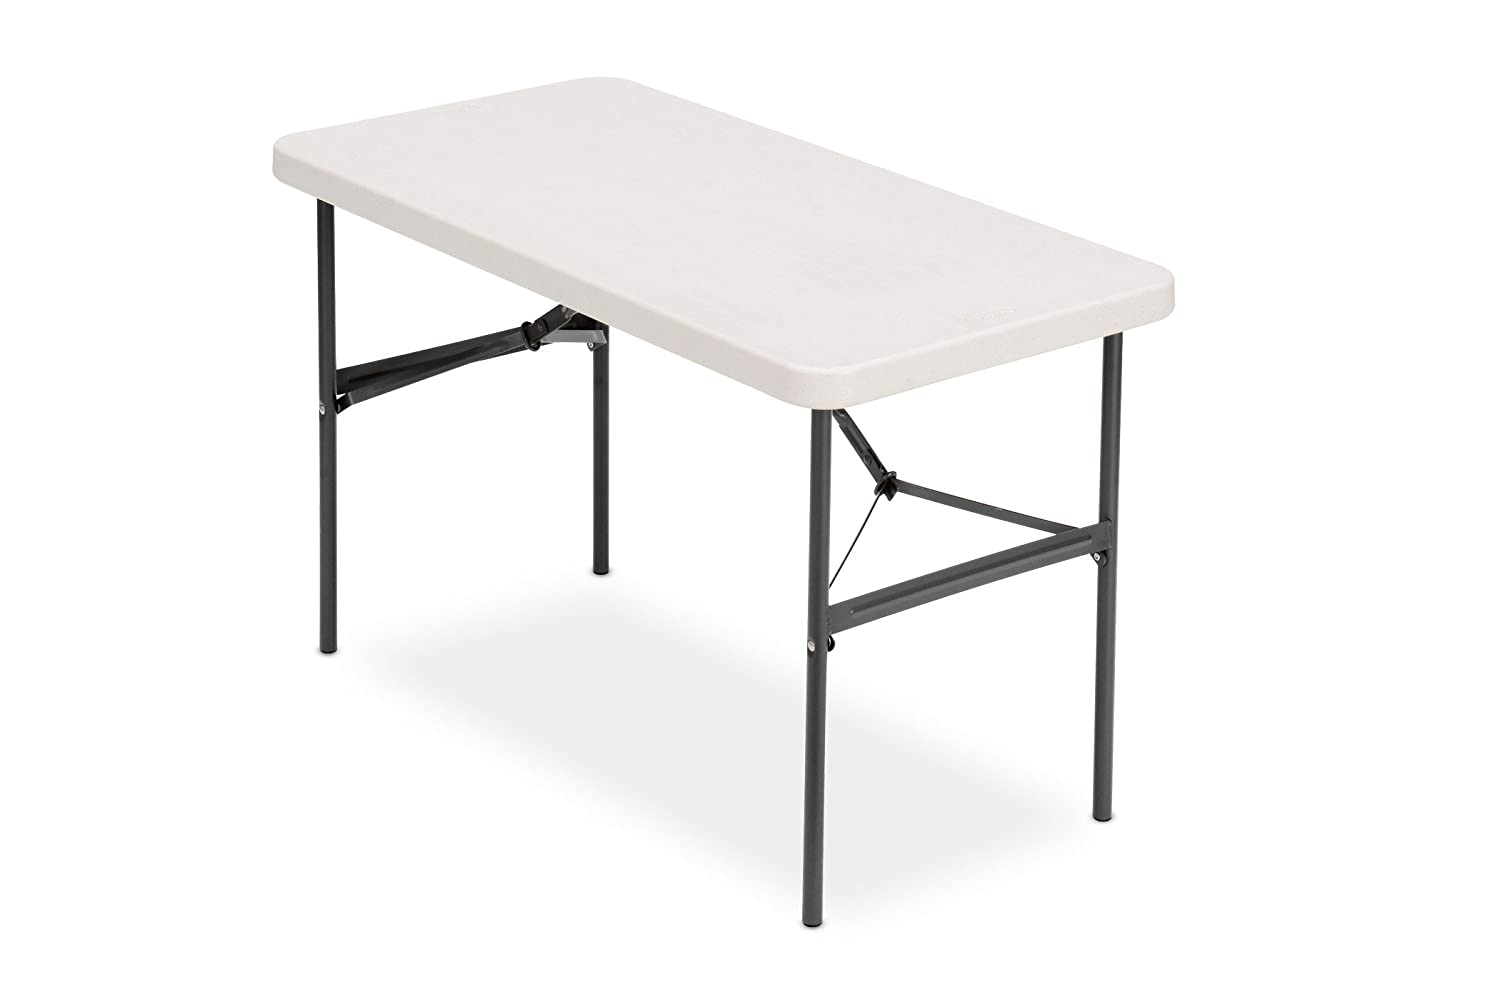 "Iceberg 24"" x 48"" Folding Table, Platinum, IndestrucTable TOO 500 Series (MADE IN USA)"